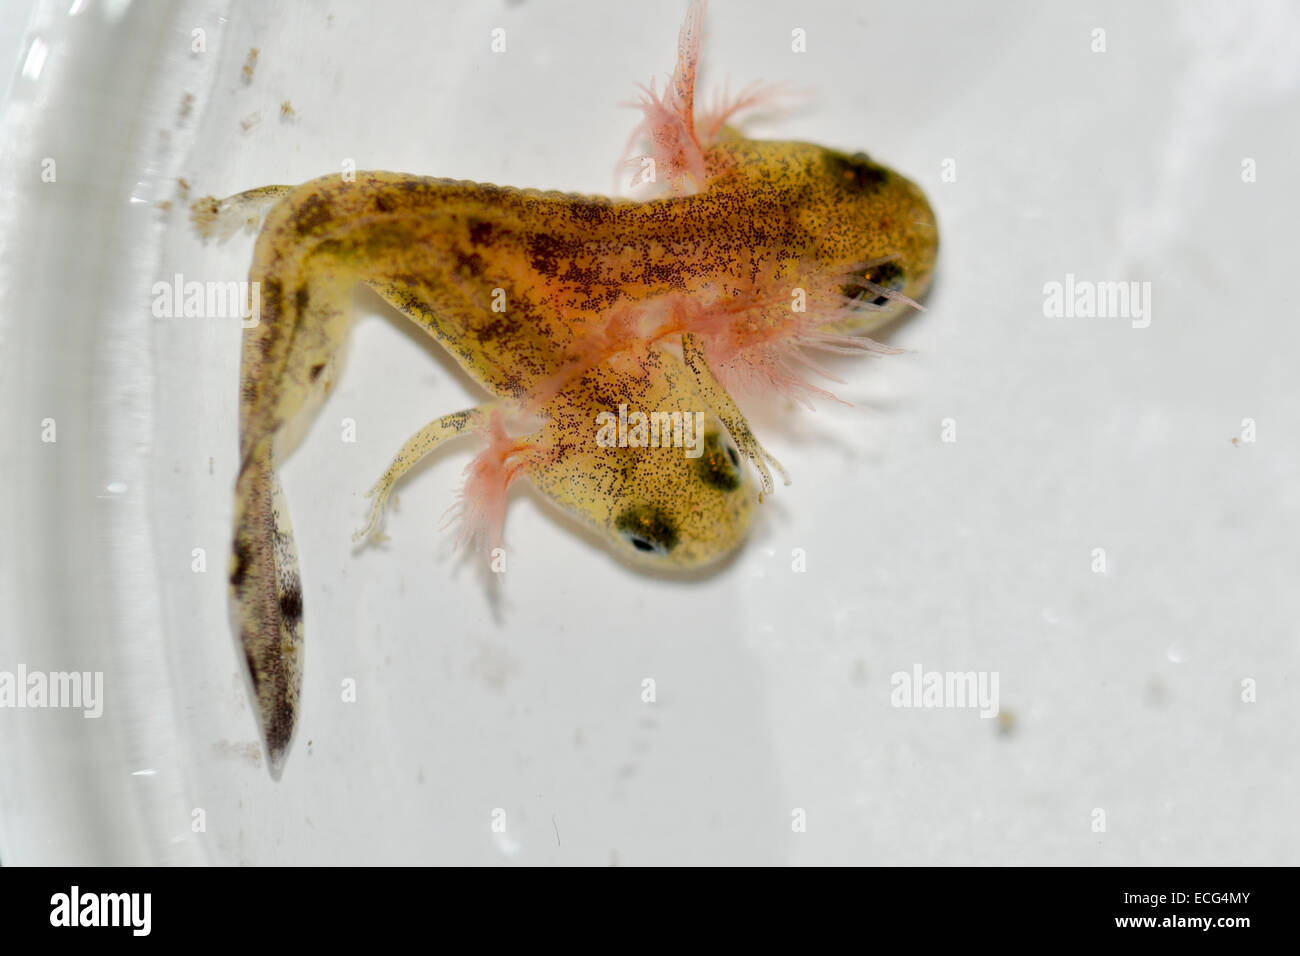 Two-headed Near Eastern fire salamander (Salamandra infraimmaculata) tadpole that was born last week in a community - Stock Image